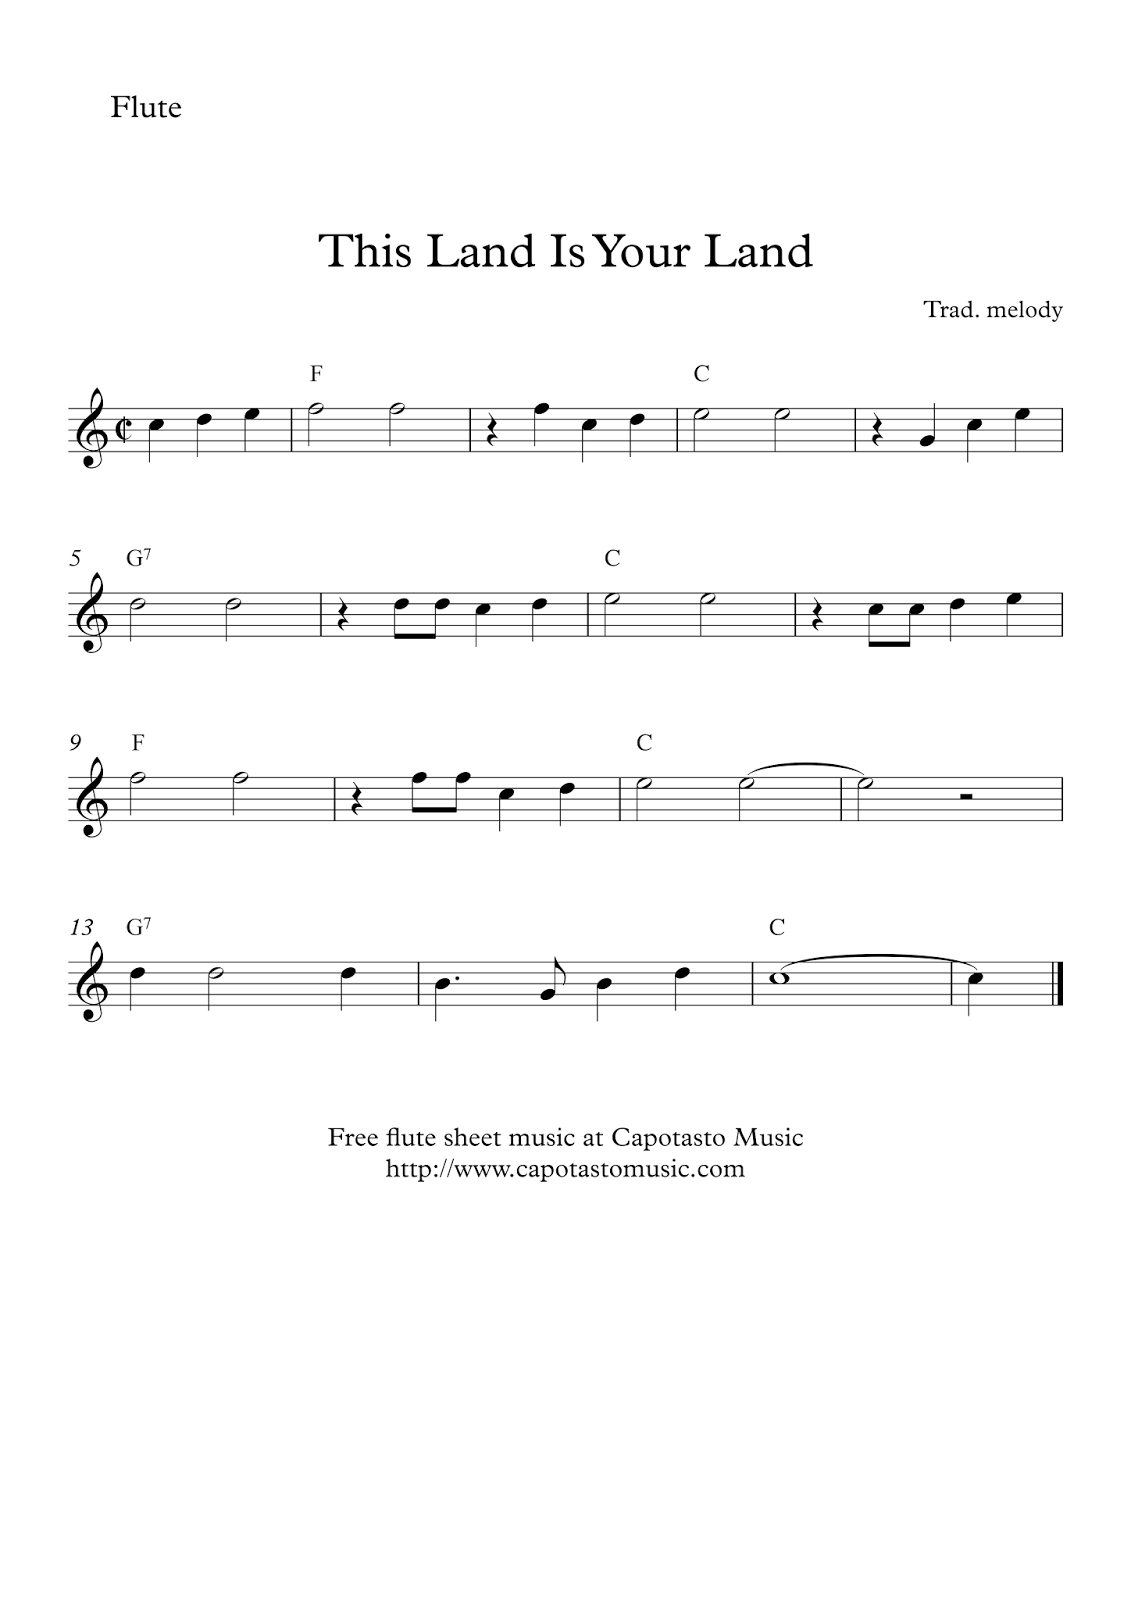 picture about Free Printable Flute Sheet Music called This Land Is Your Land - No cost uncomplicated flute sheet new music